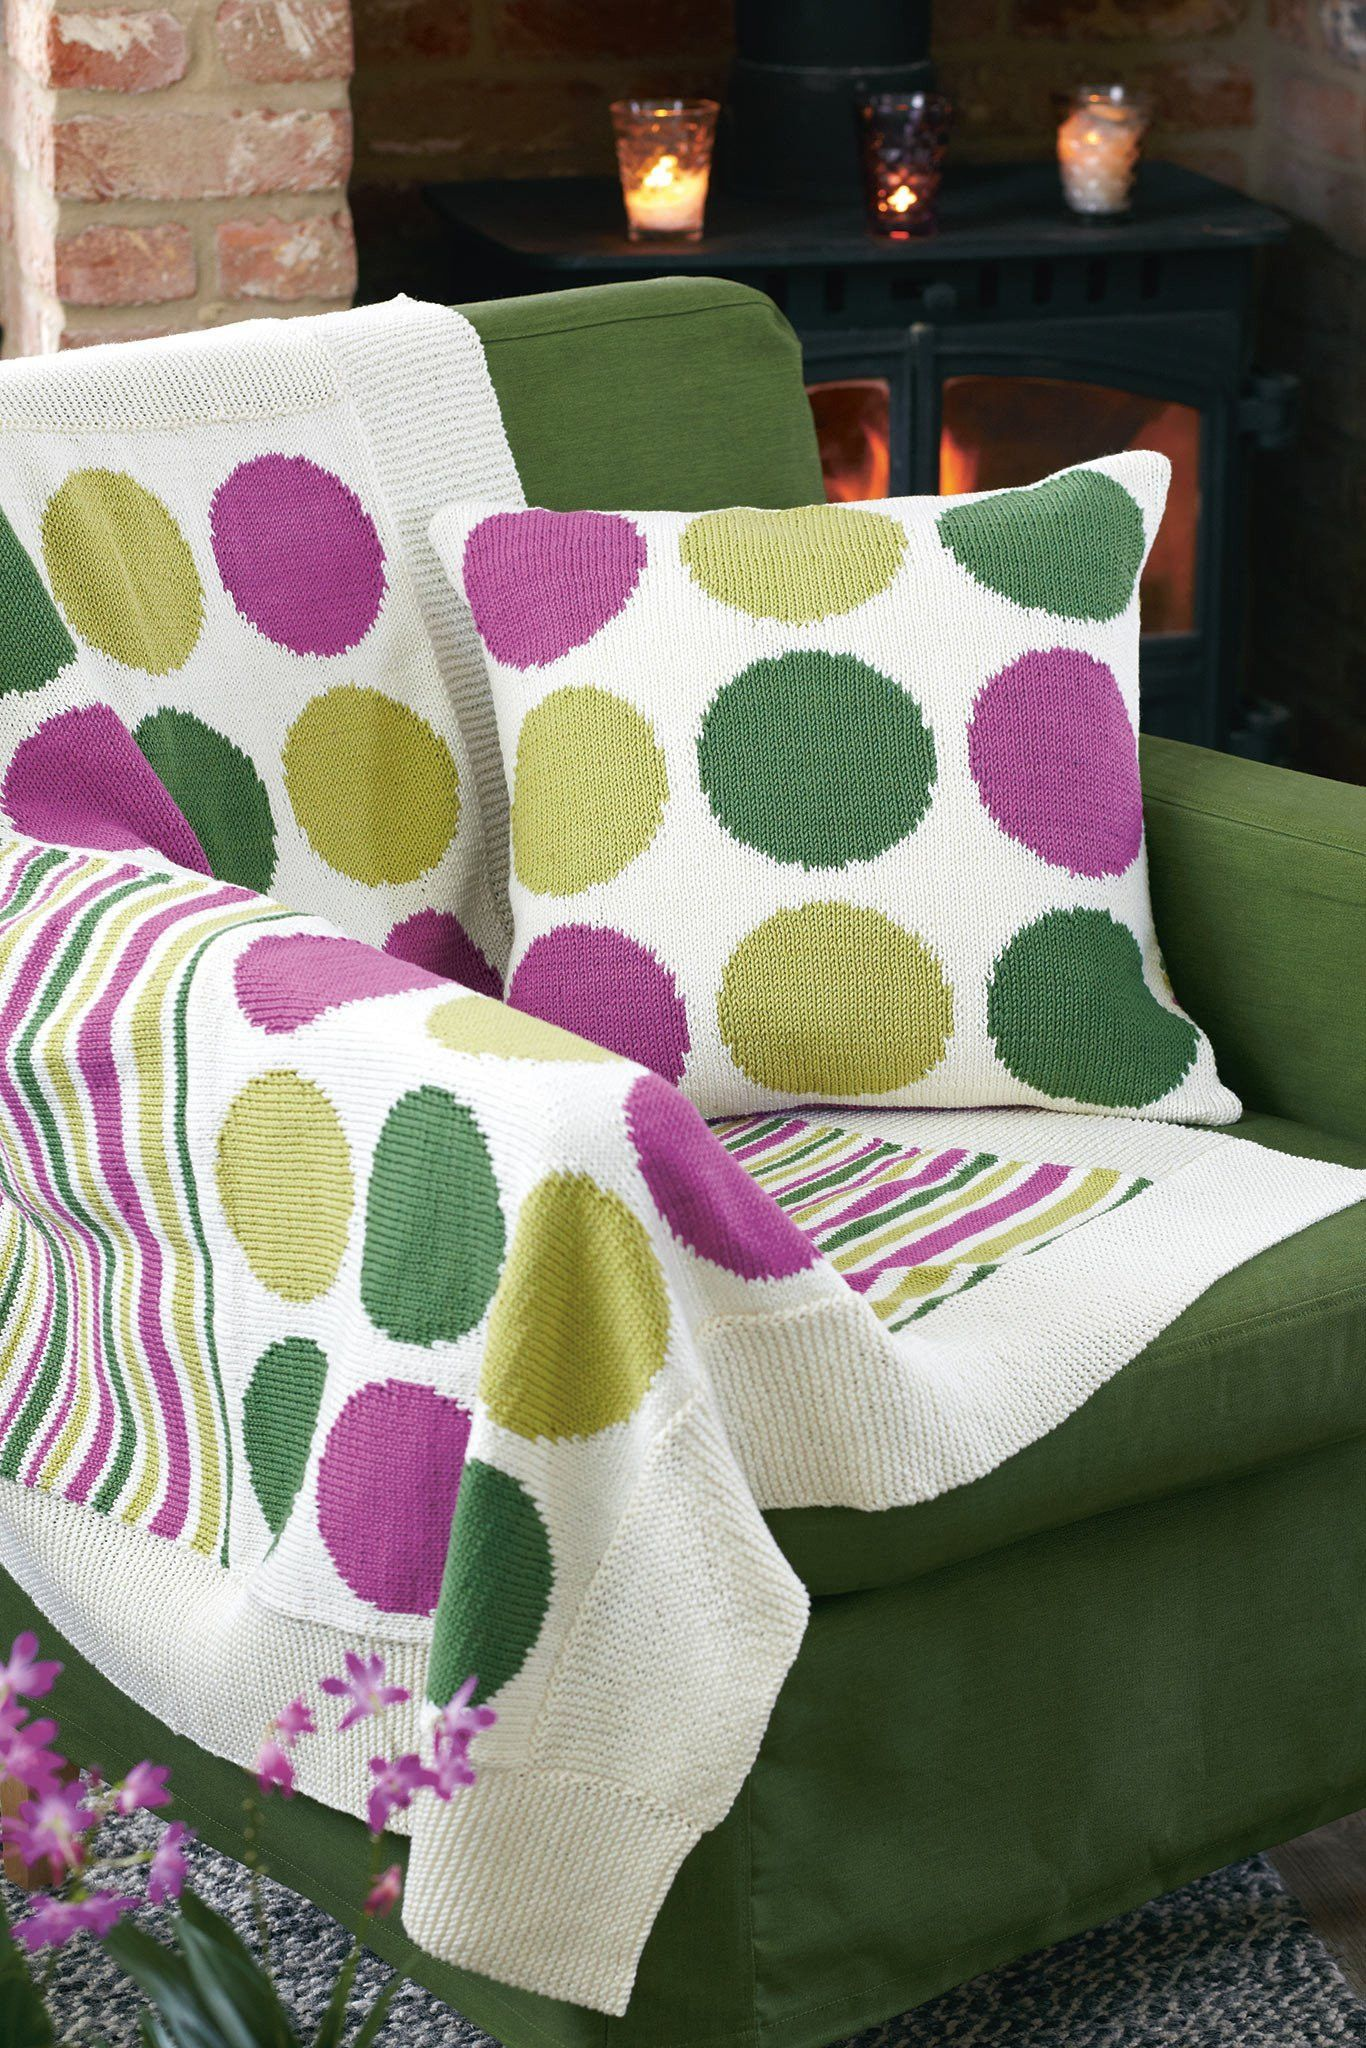 Blanket And Cushion With Spots And Stripes Knitting ...